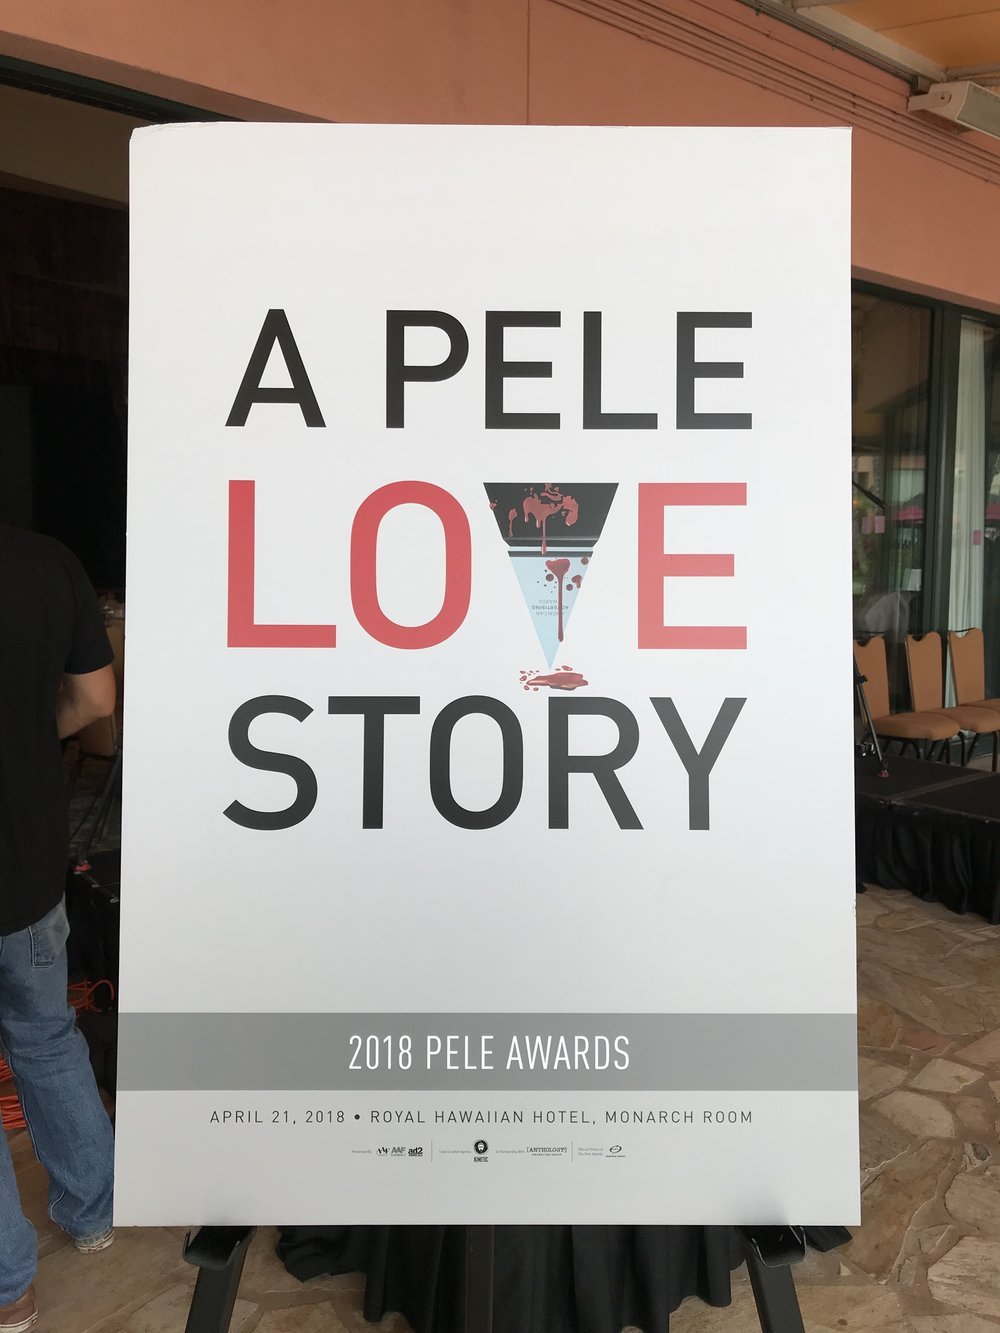 Curate-2018-Pele-Awards-Poster.jpg